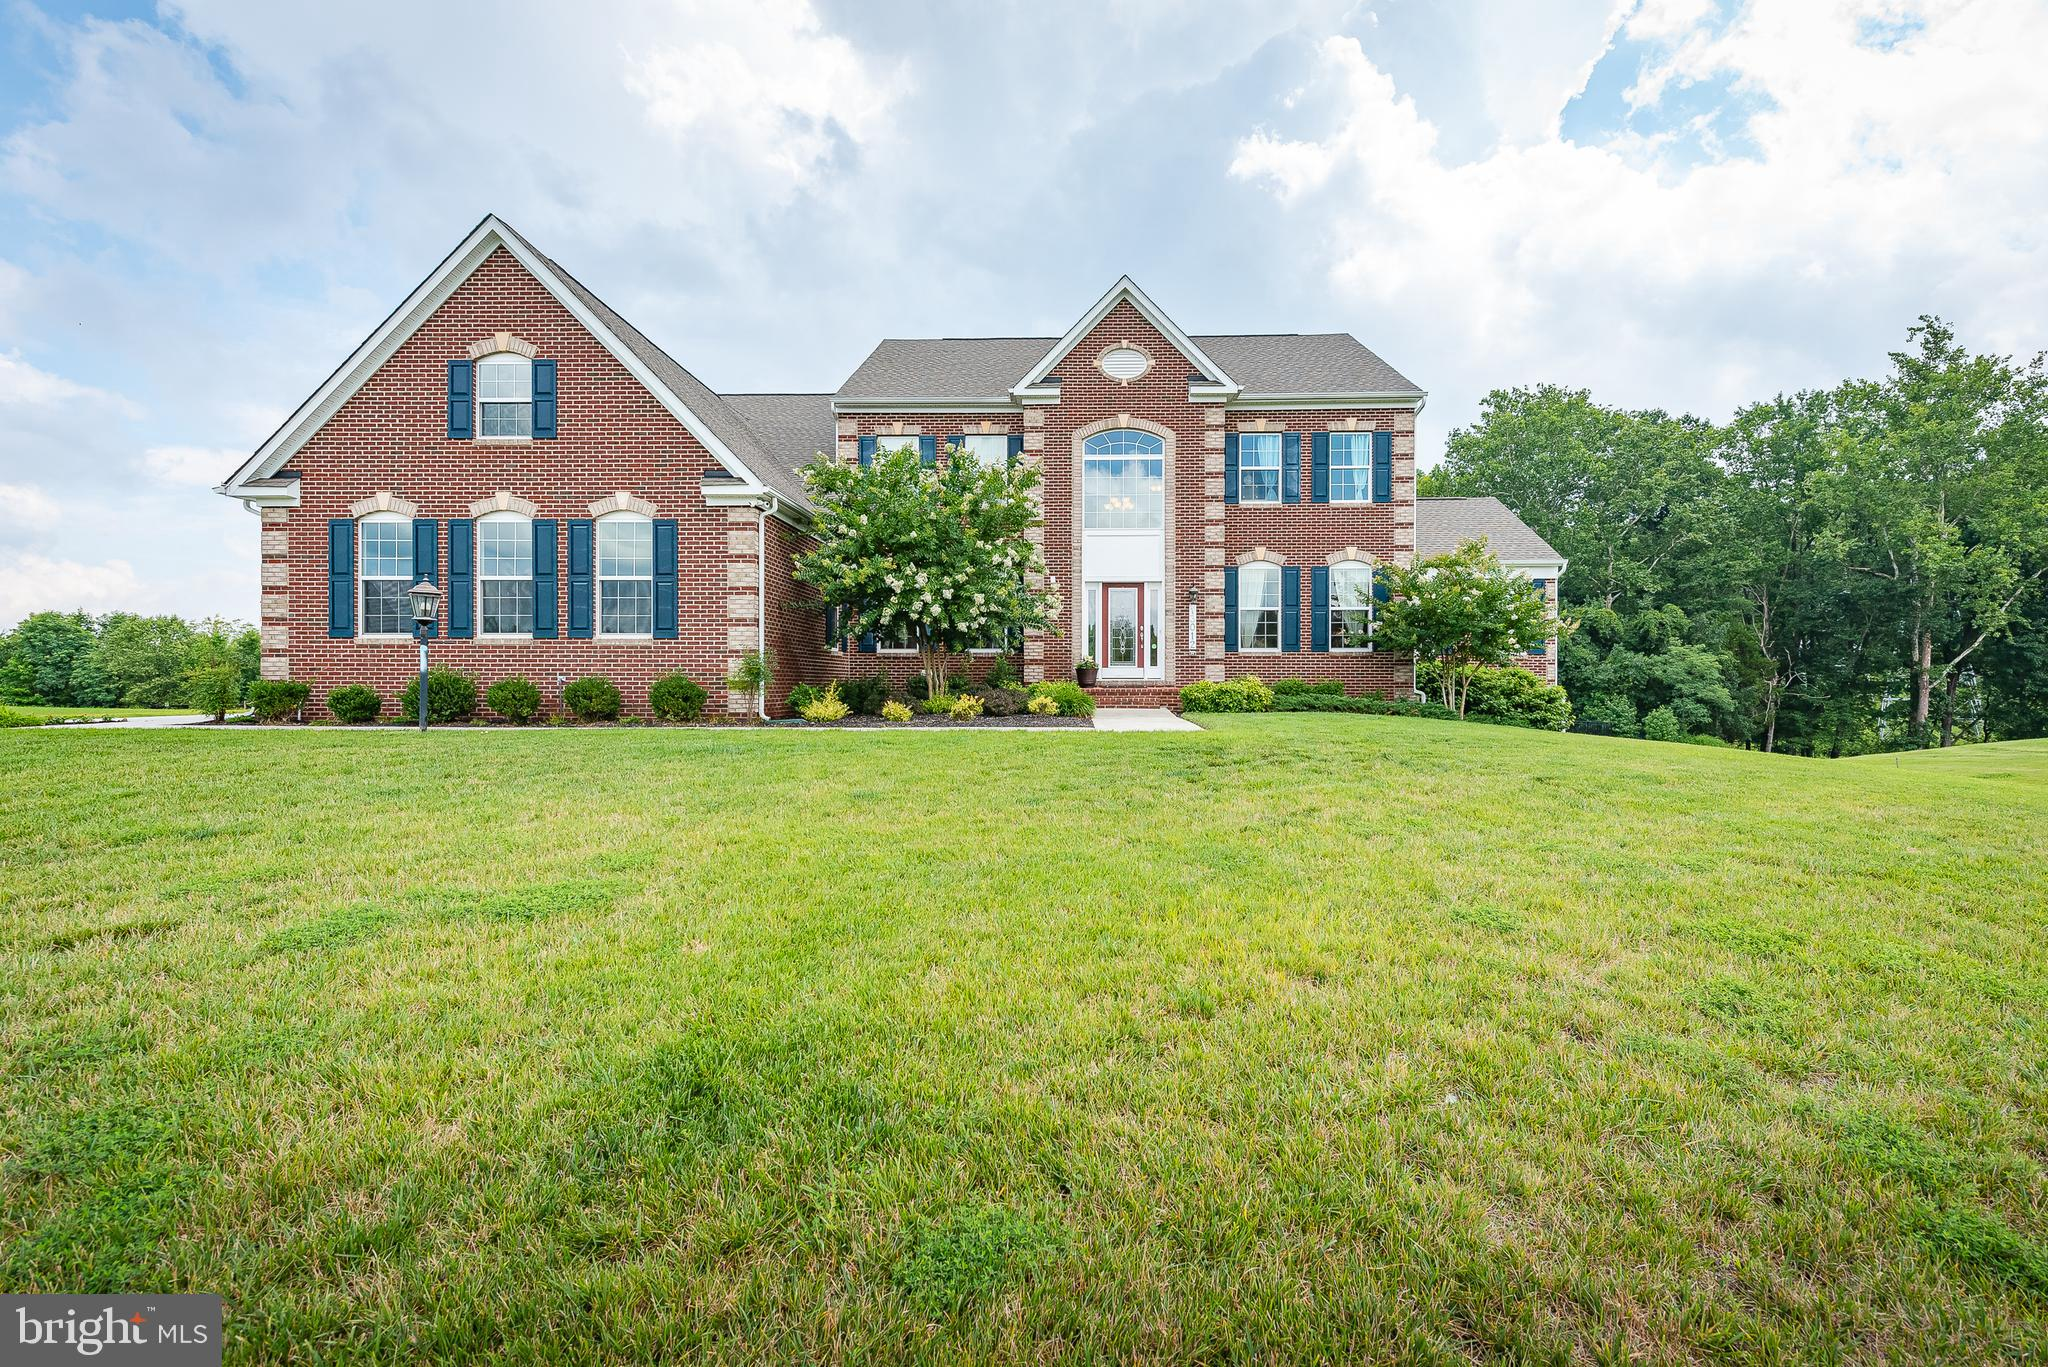 13012 WINDING CREEK ROAD, BOWIE, MD 20721